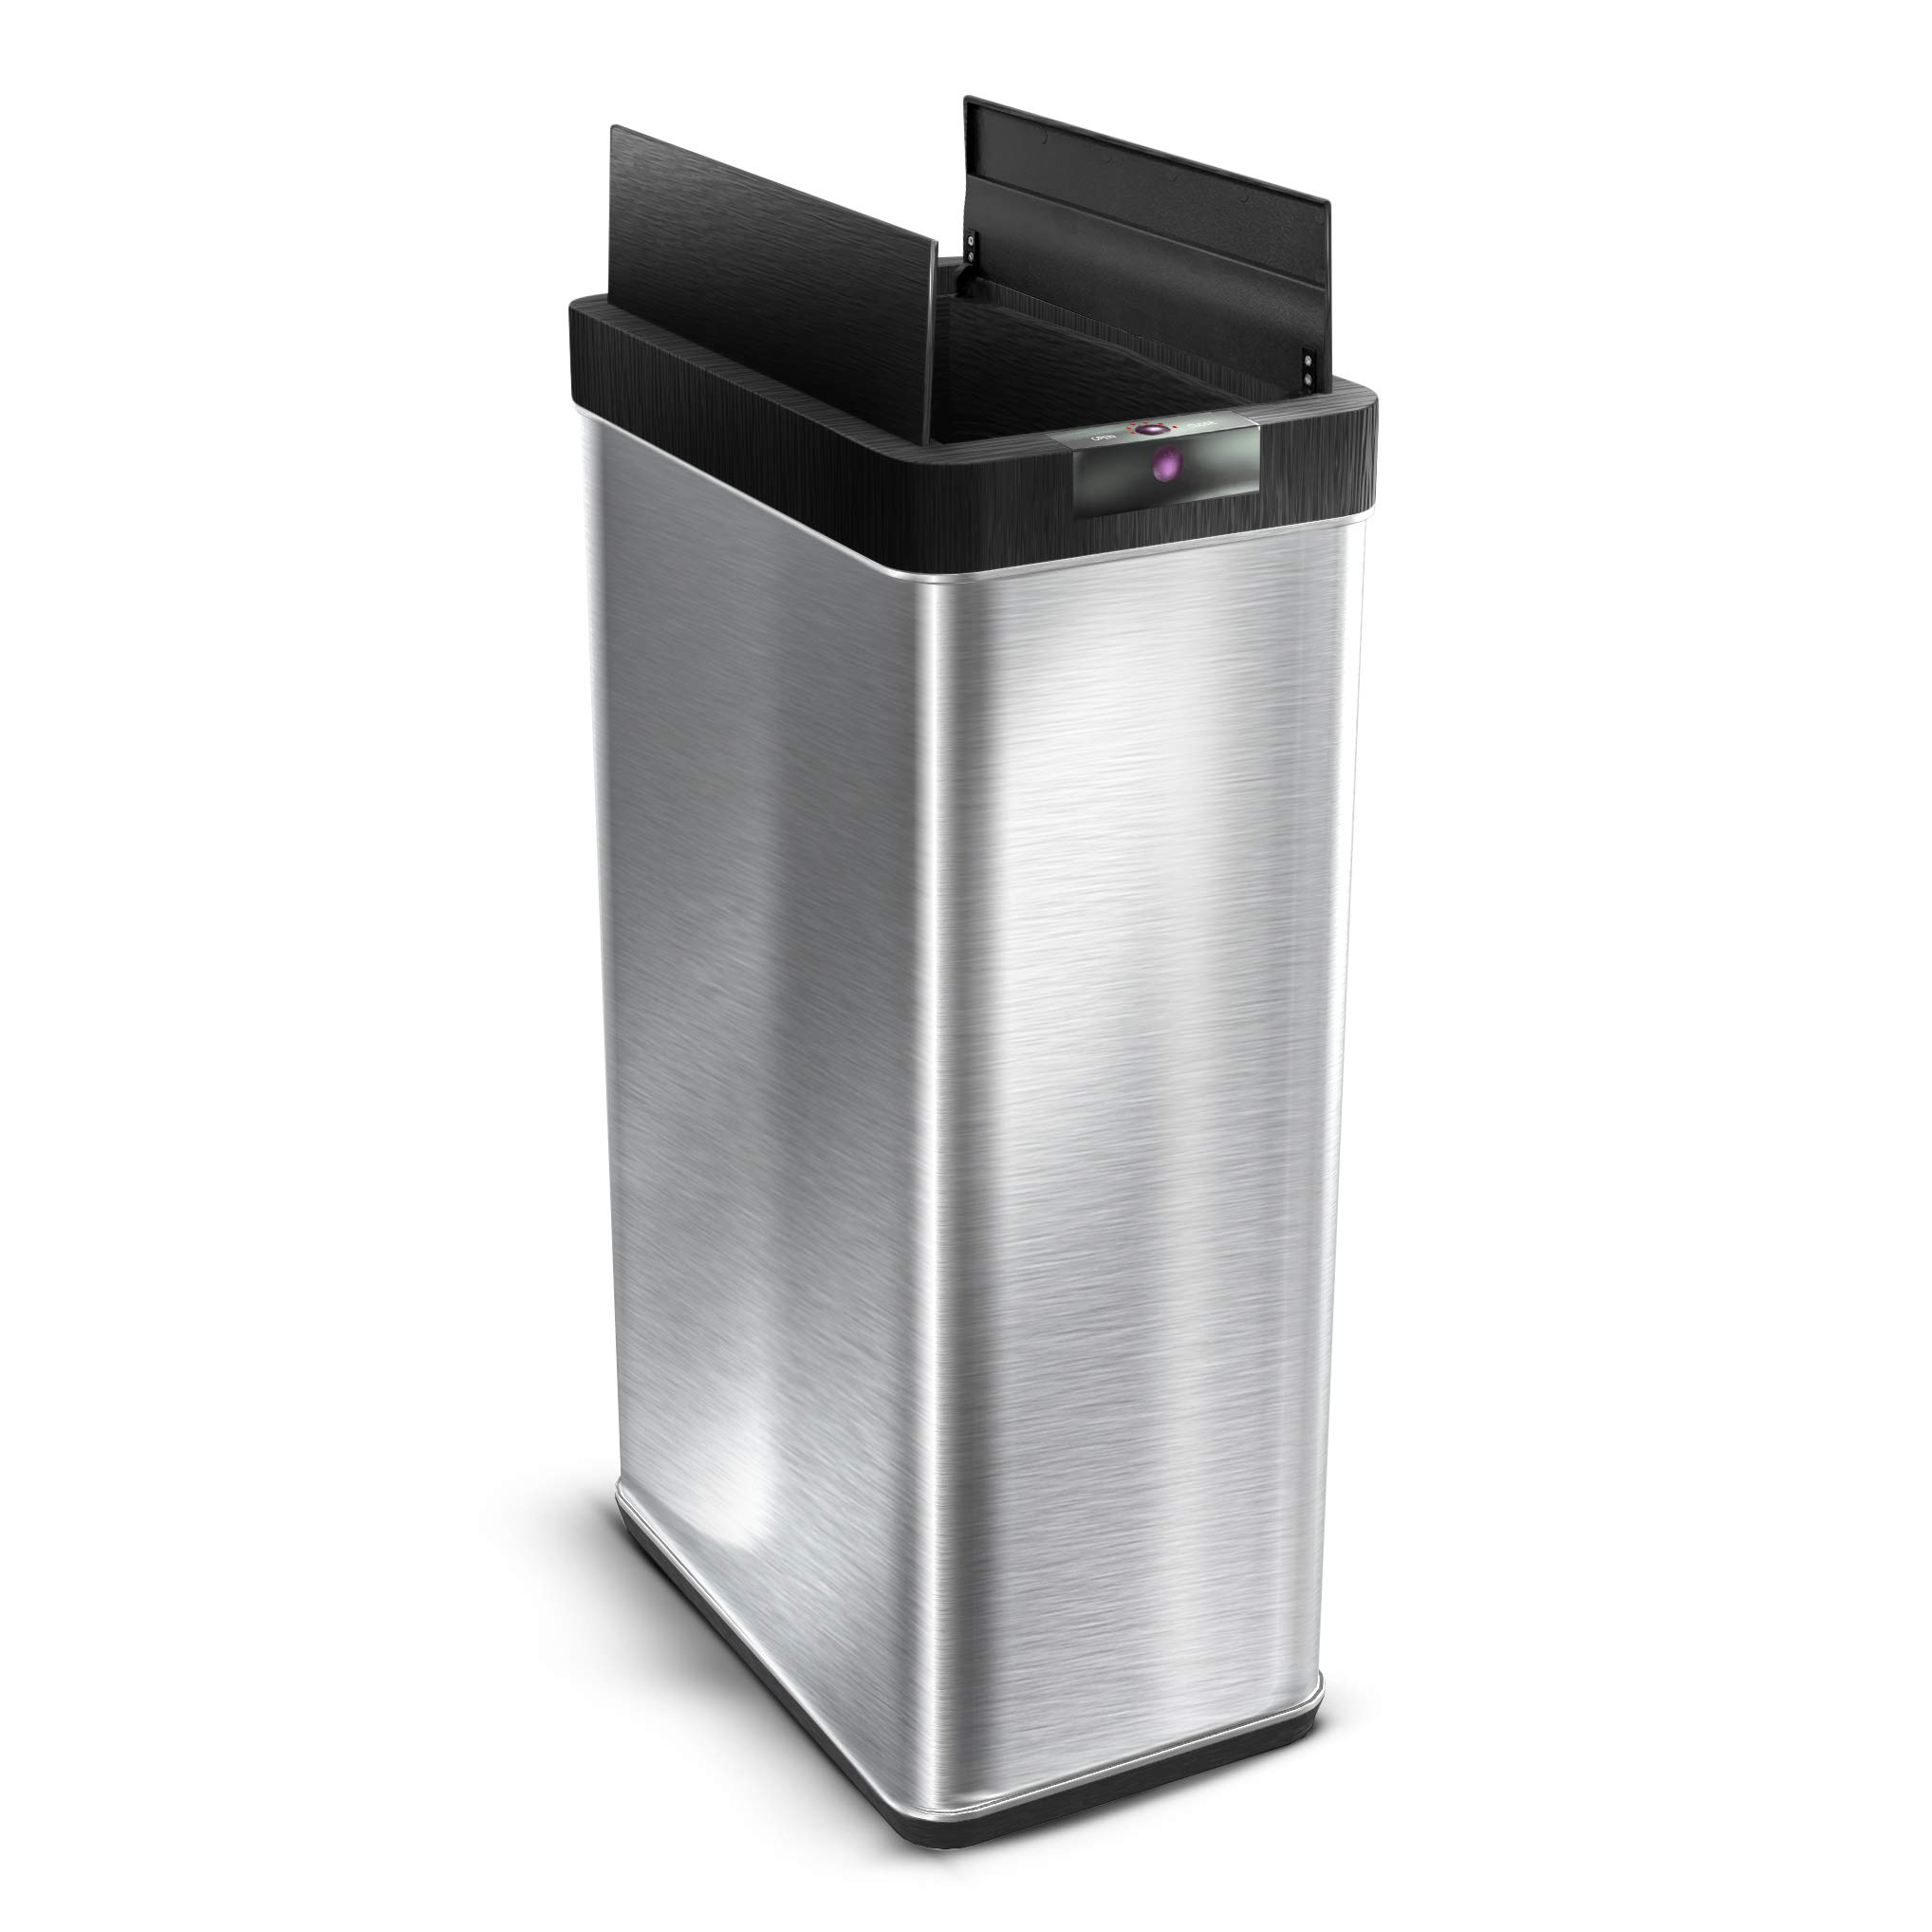 Home Zone Living VA41838A 68 Liter / 18 Gallon Stainless Steel Sensor Trash Can, Touchless Automatic Opening Lid, 68L Bin, Silver